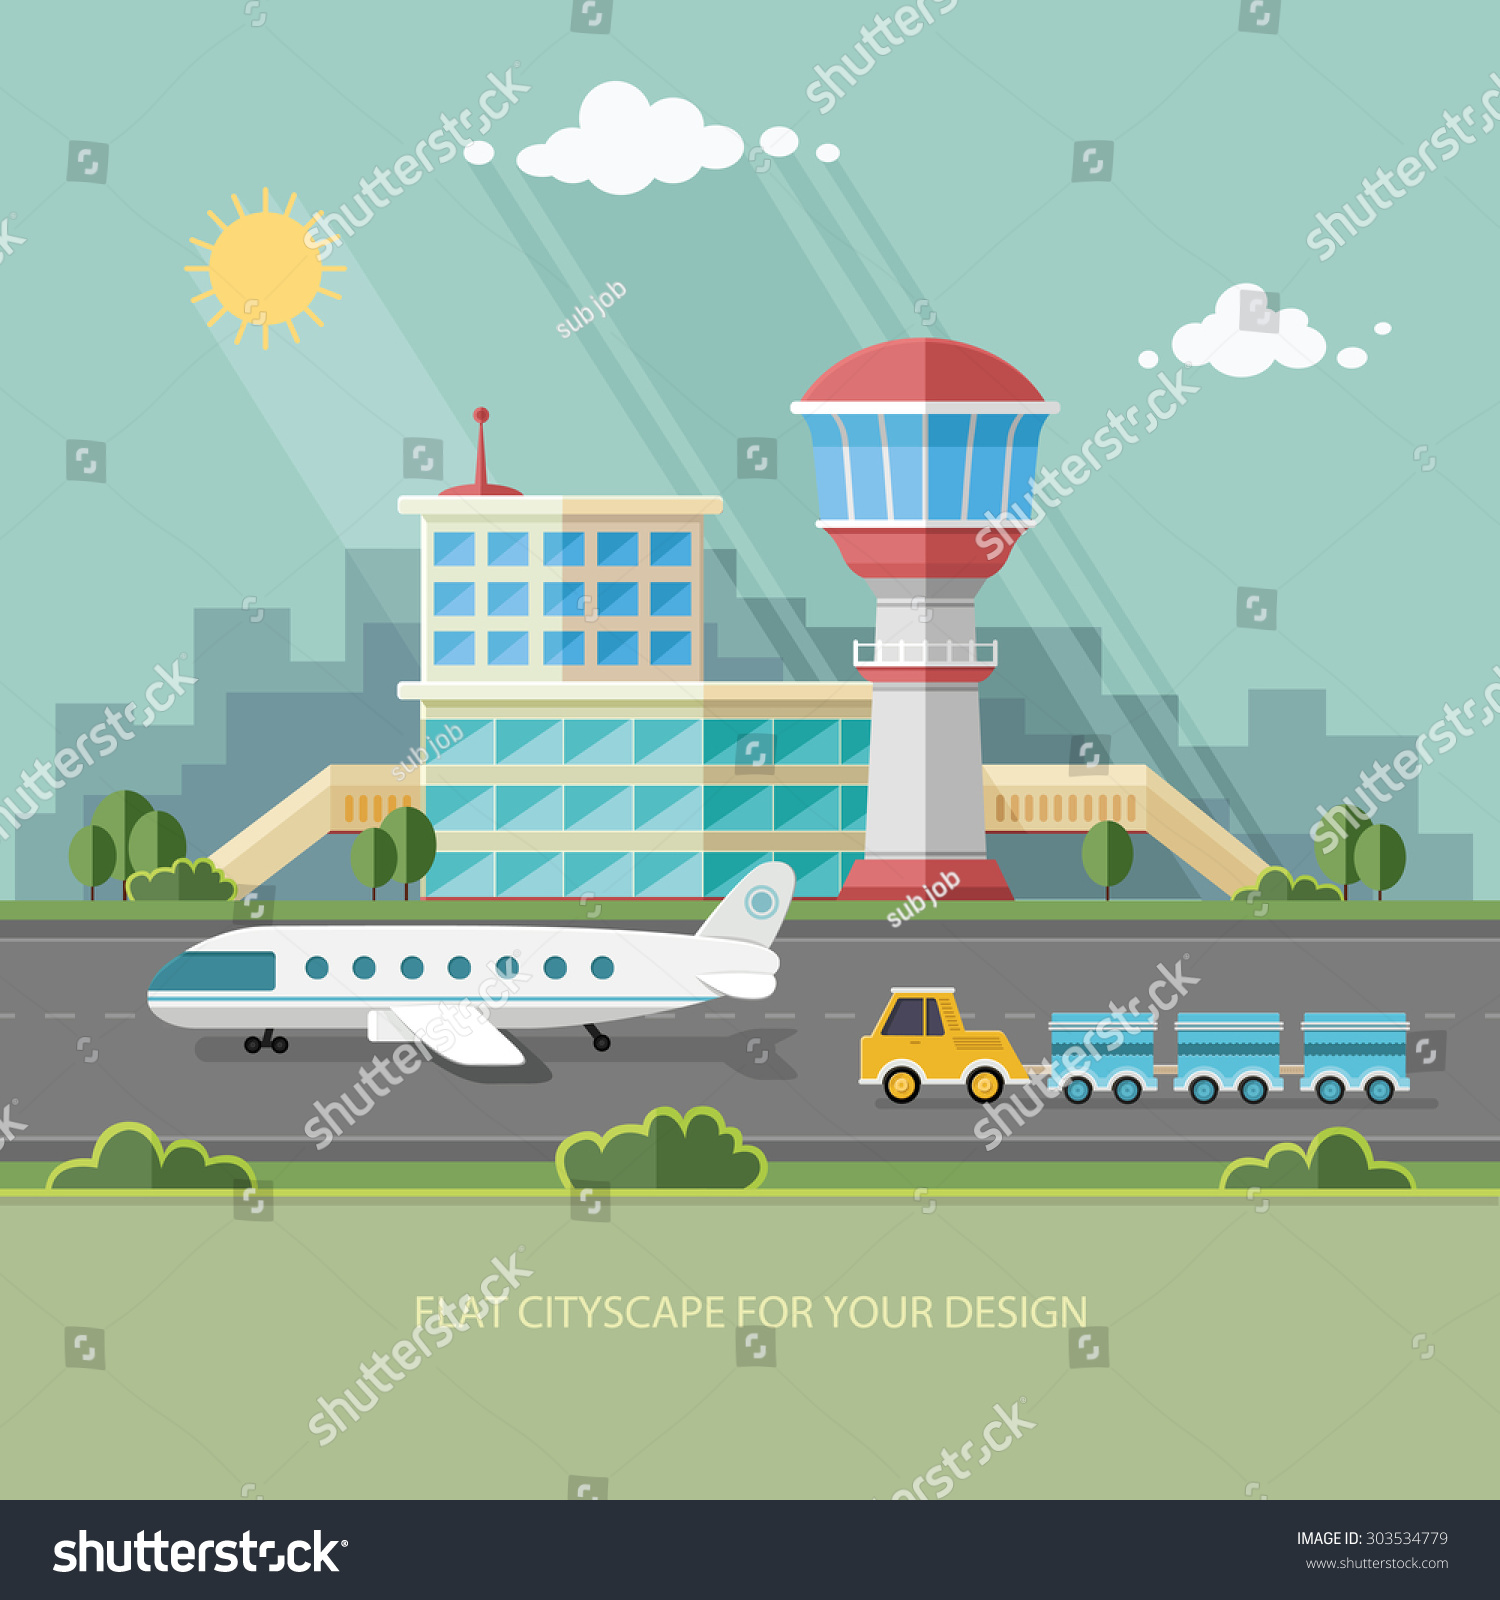 airport safety clipart - photo #15